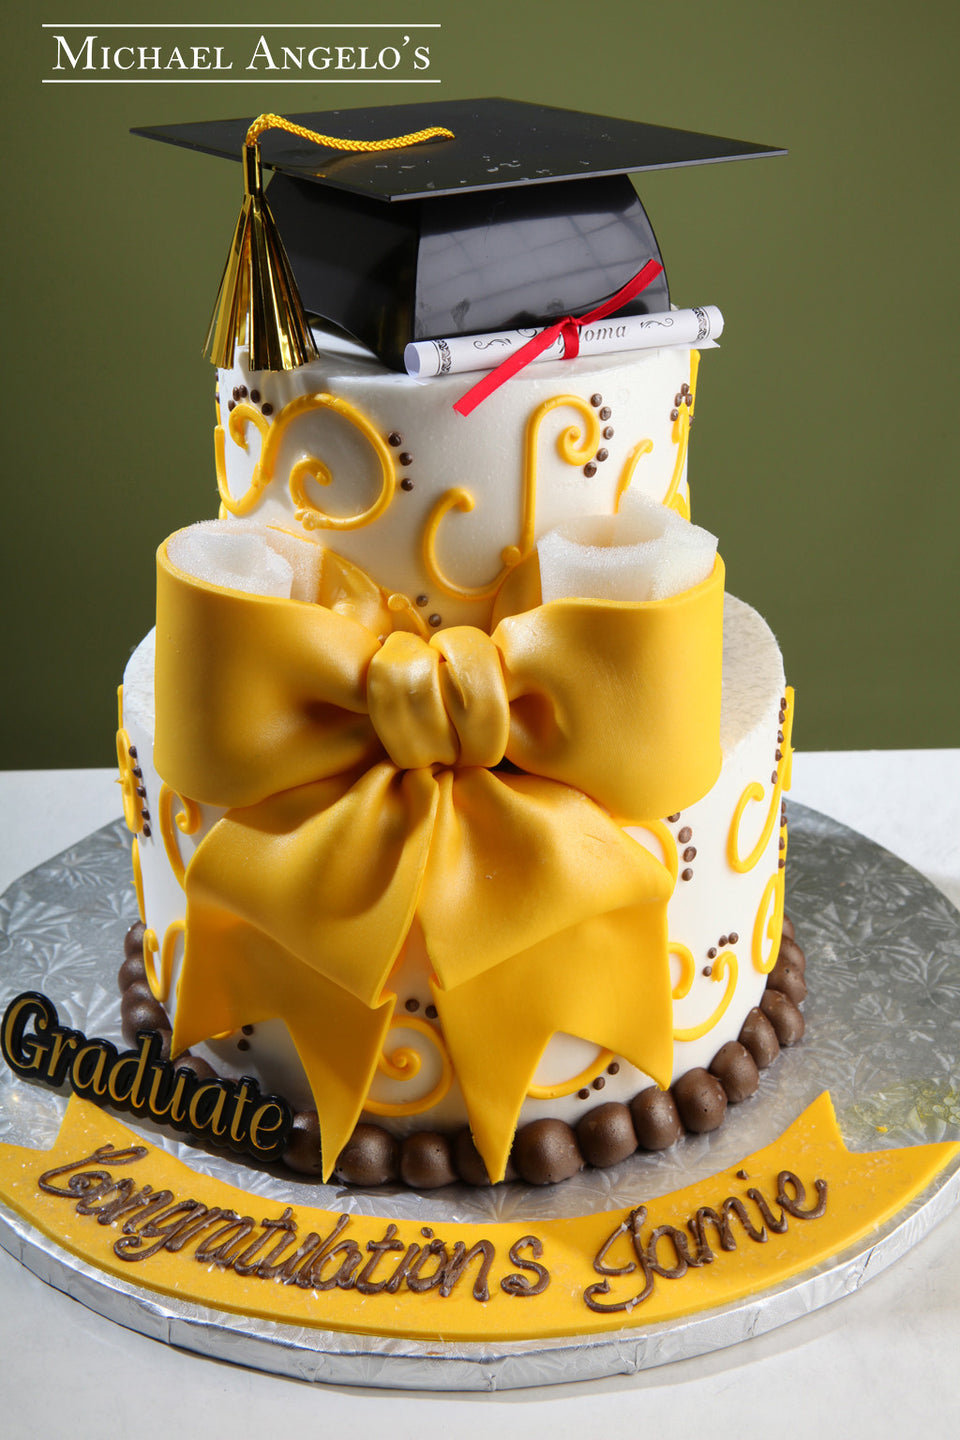 Graduation Cakes Michael Angelos